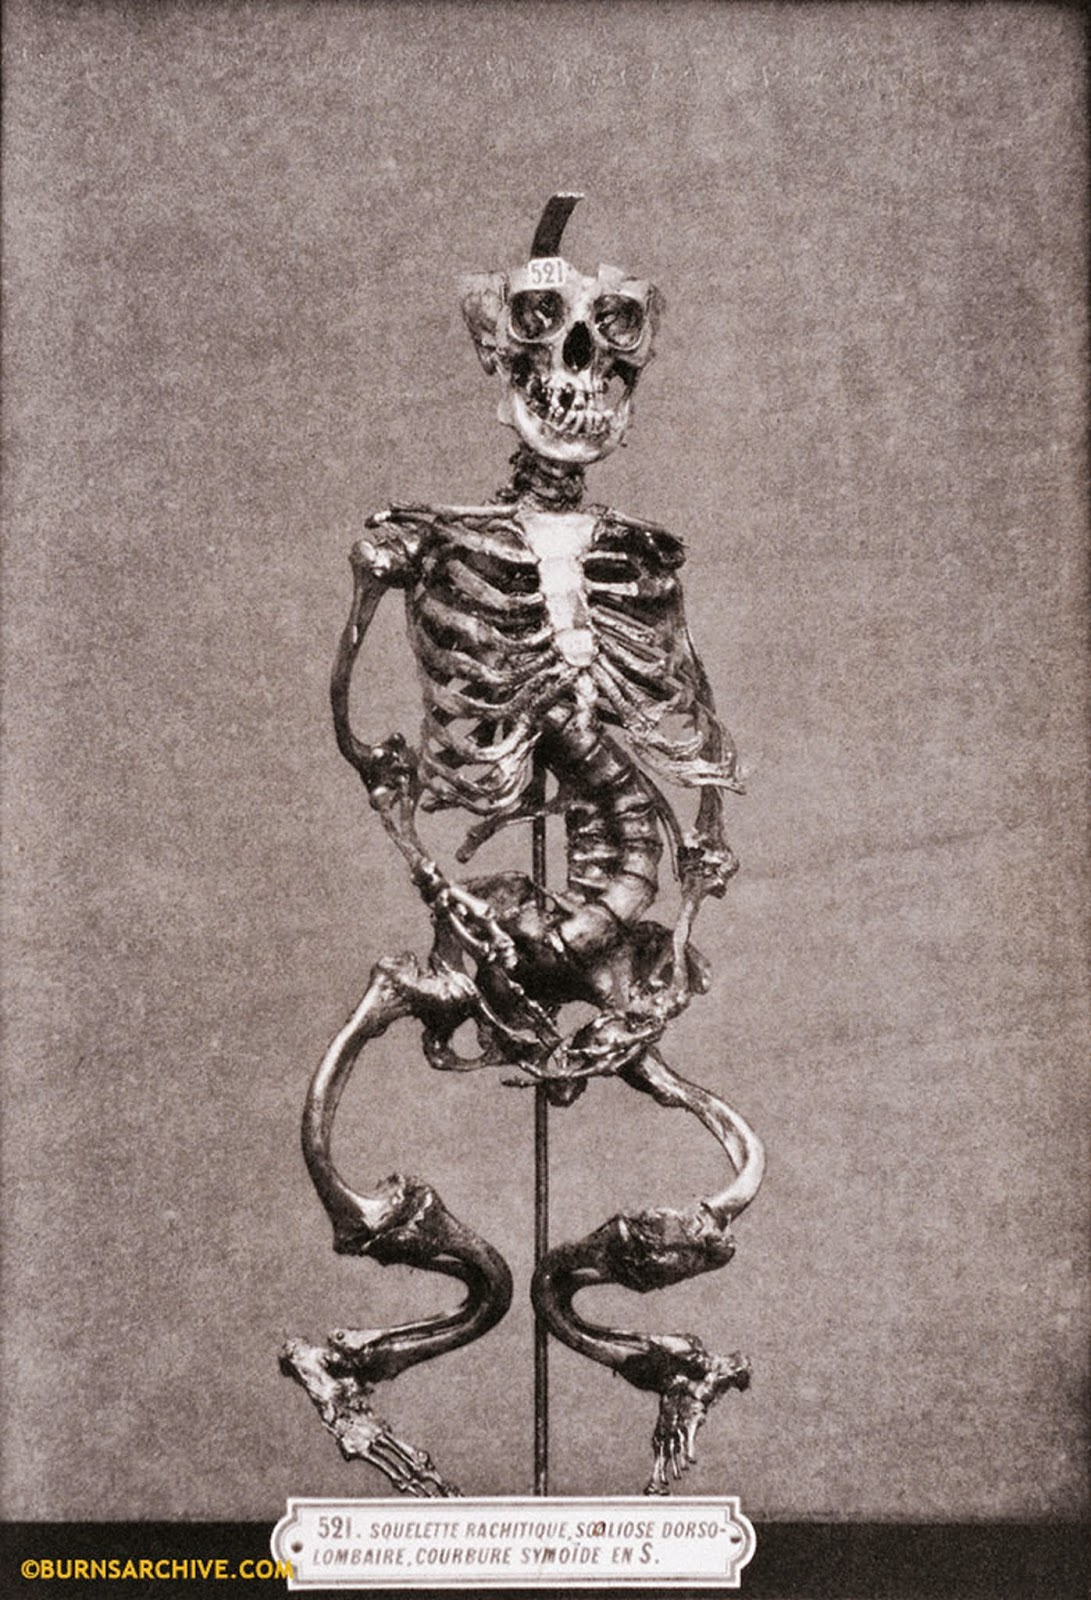 Weird Vintage Photos Of Skeletons And Death Pix I Am Bored